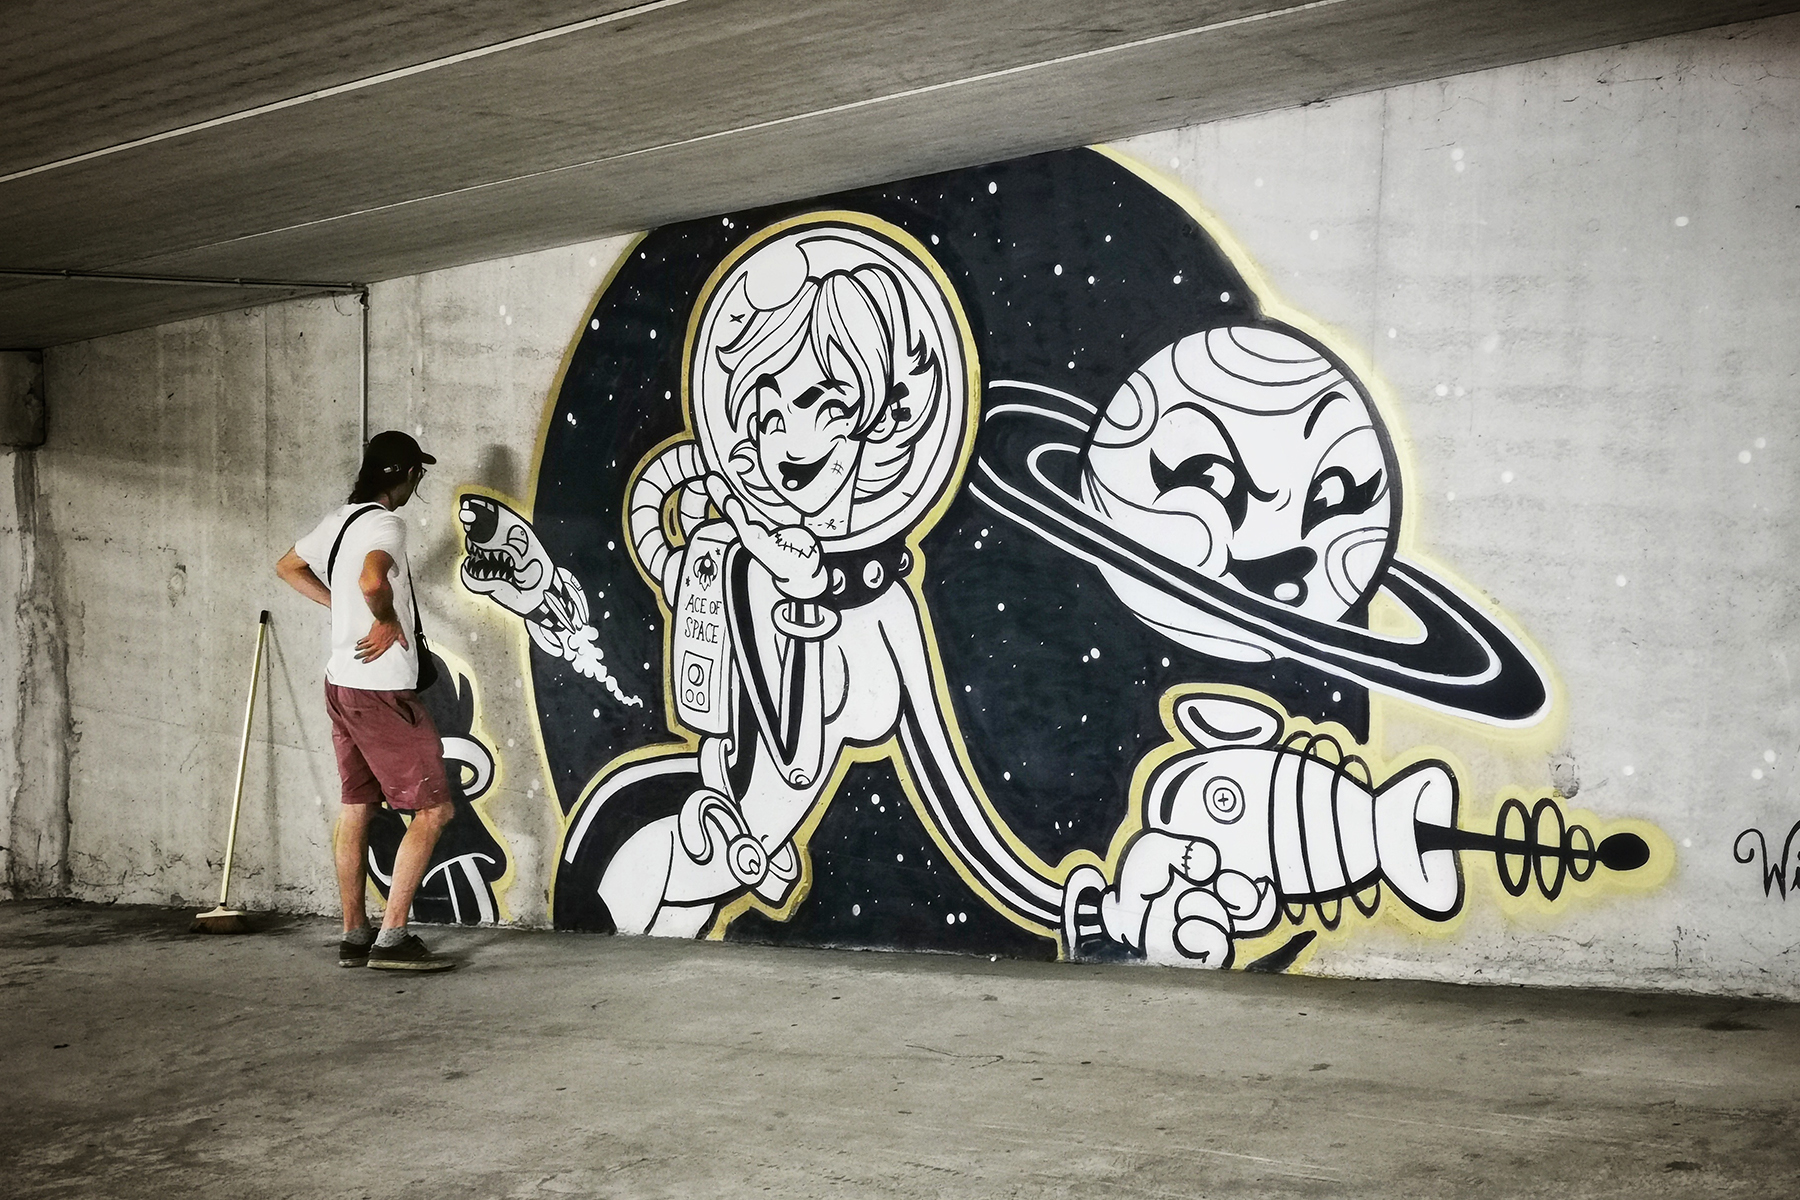 Williann-Graffitipolis-Mulhouse-Ace-of-Space